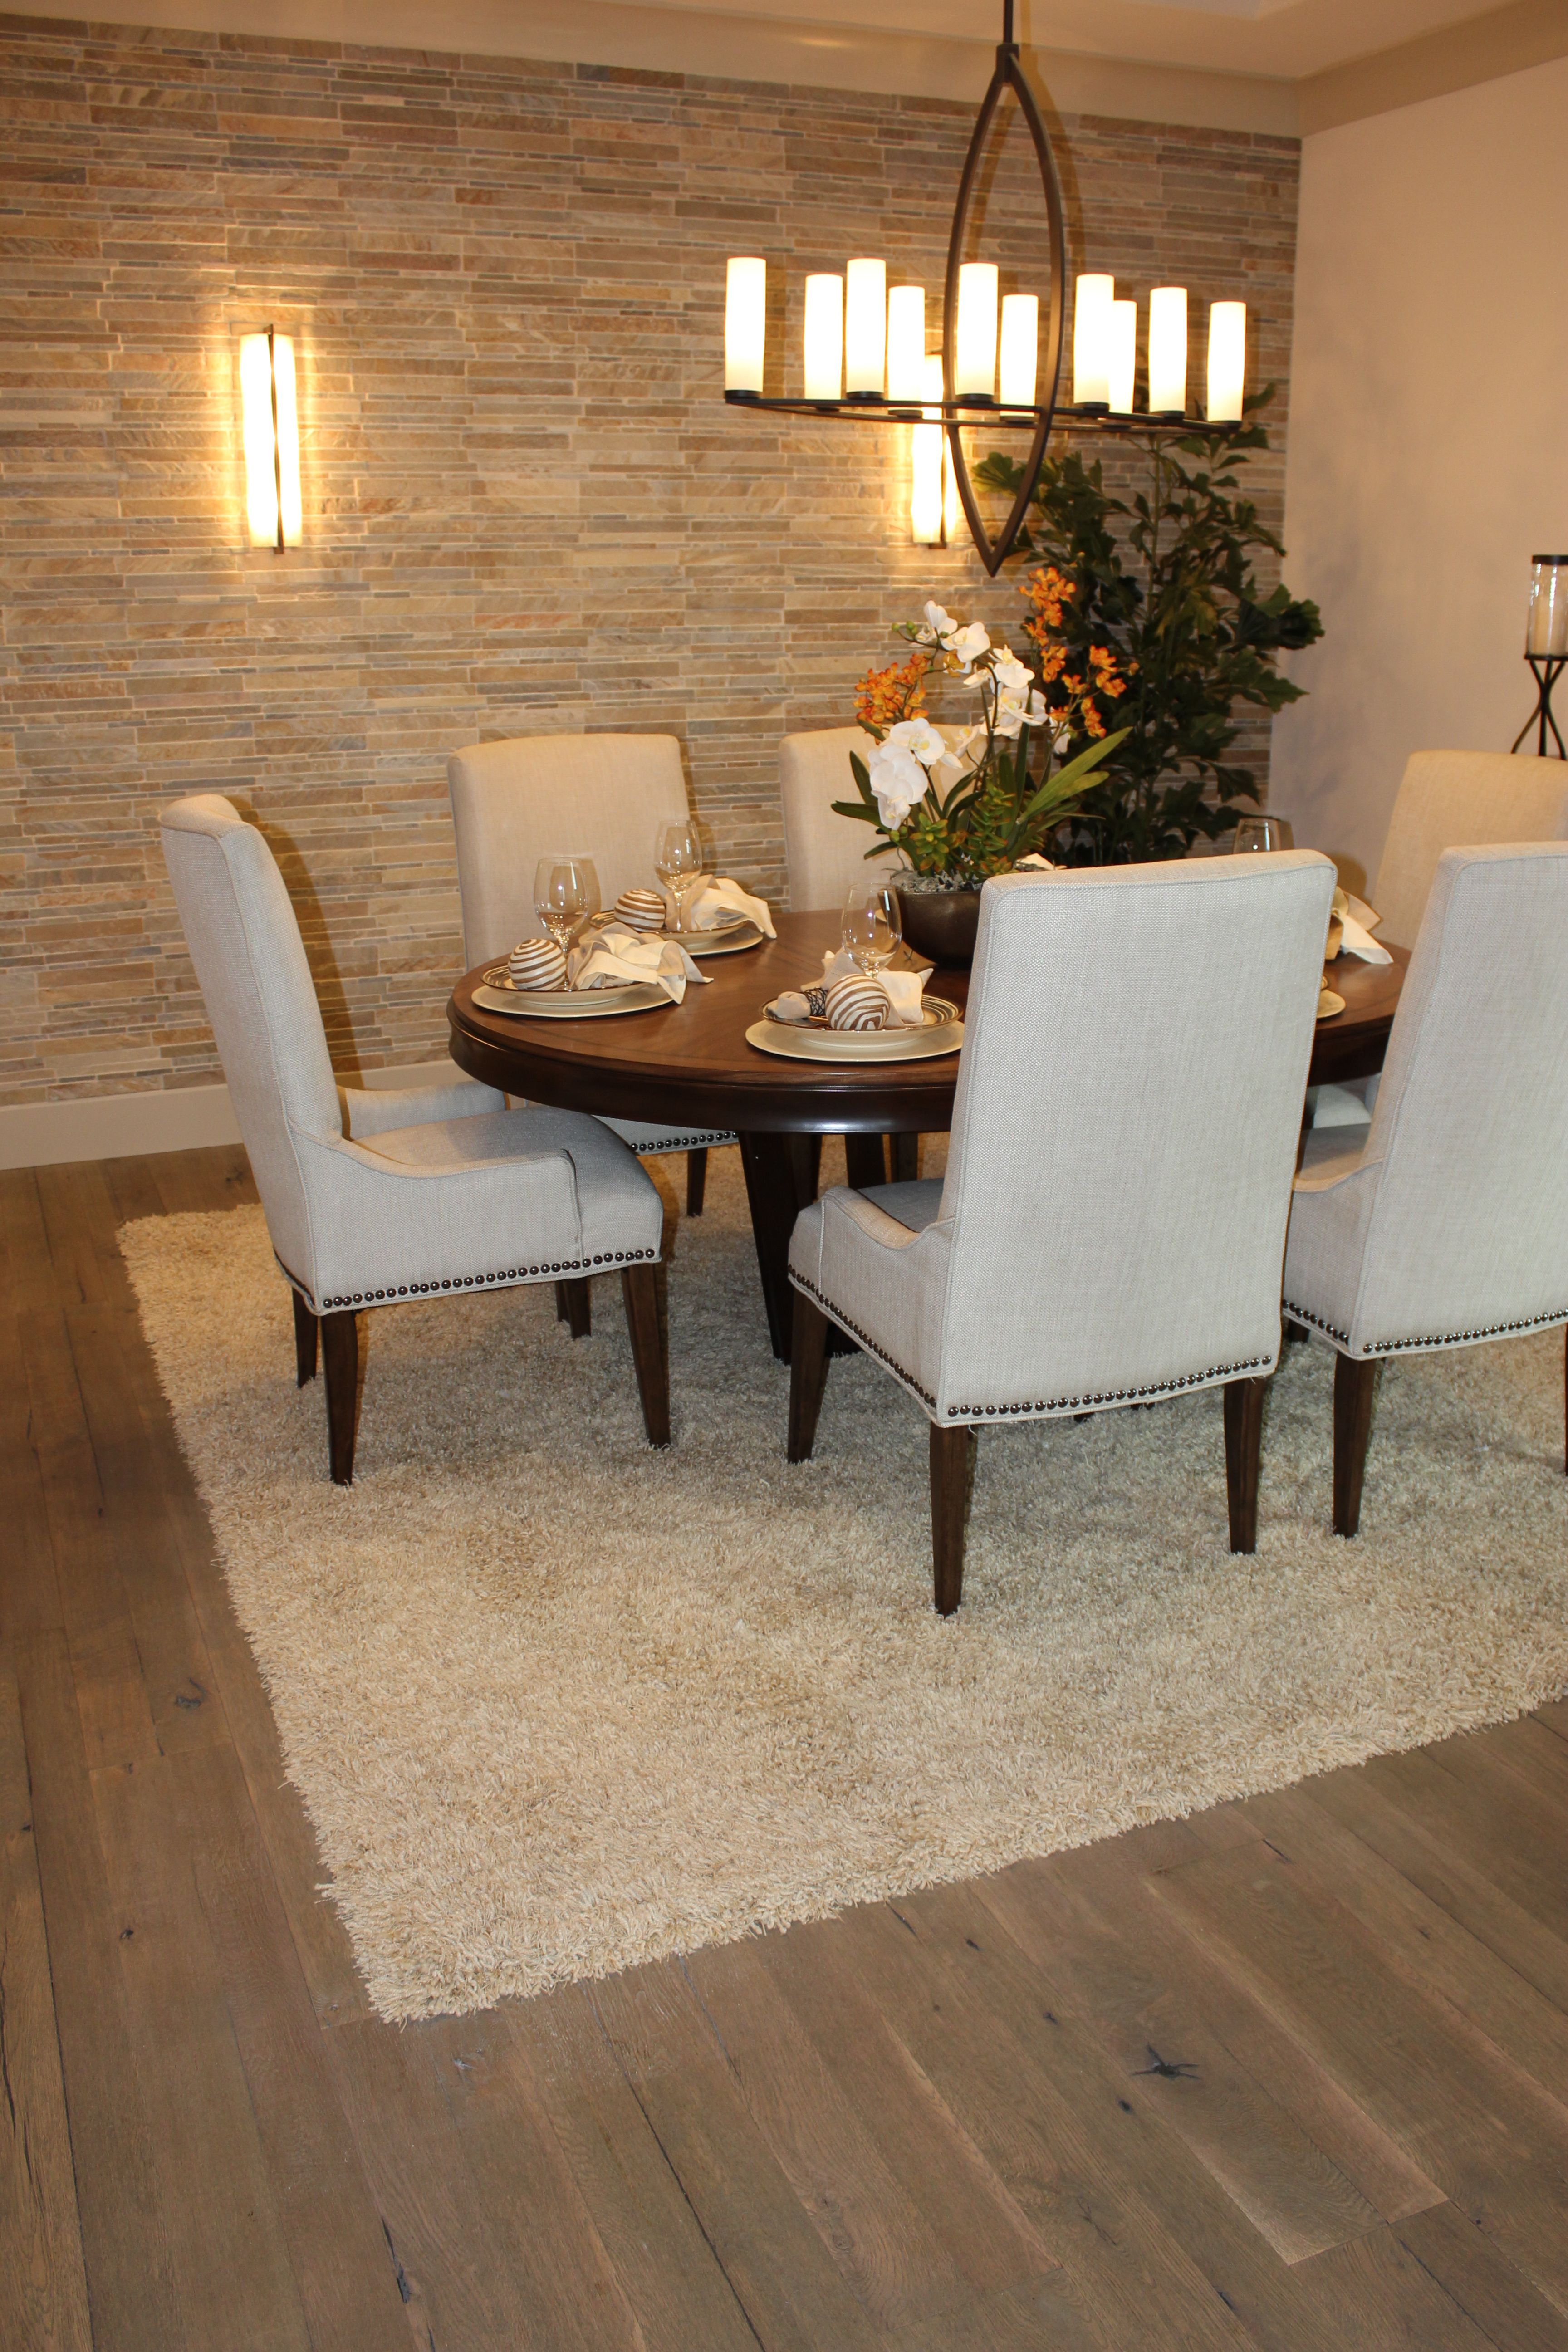 DuChateau Hardwood And Tuftex Area Rug Installed At Tim Lewis Crowne Point  Models By Simas Floor